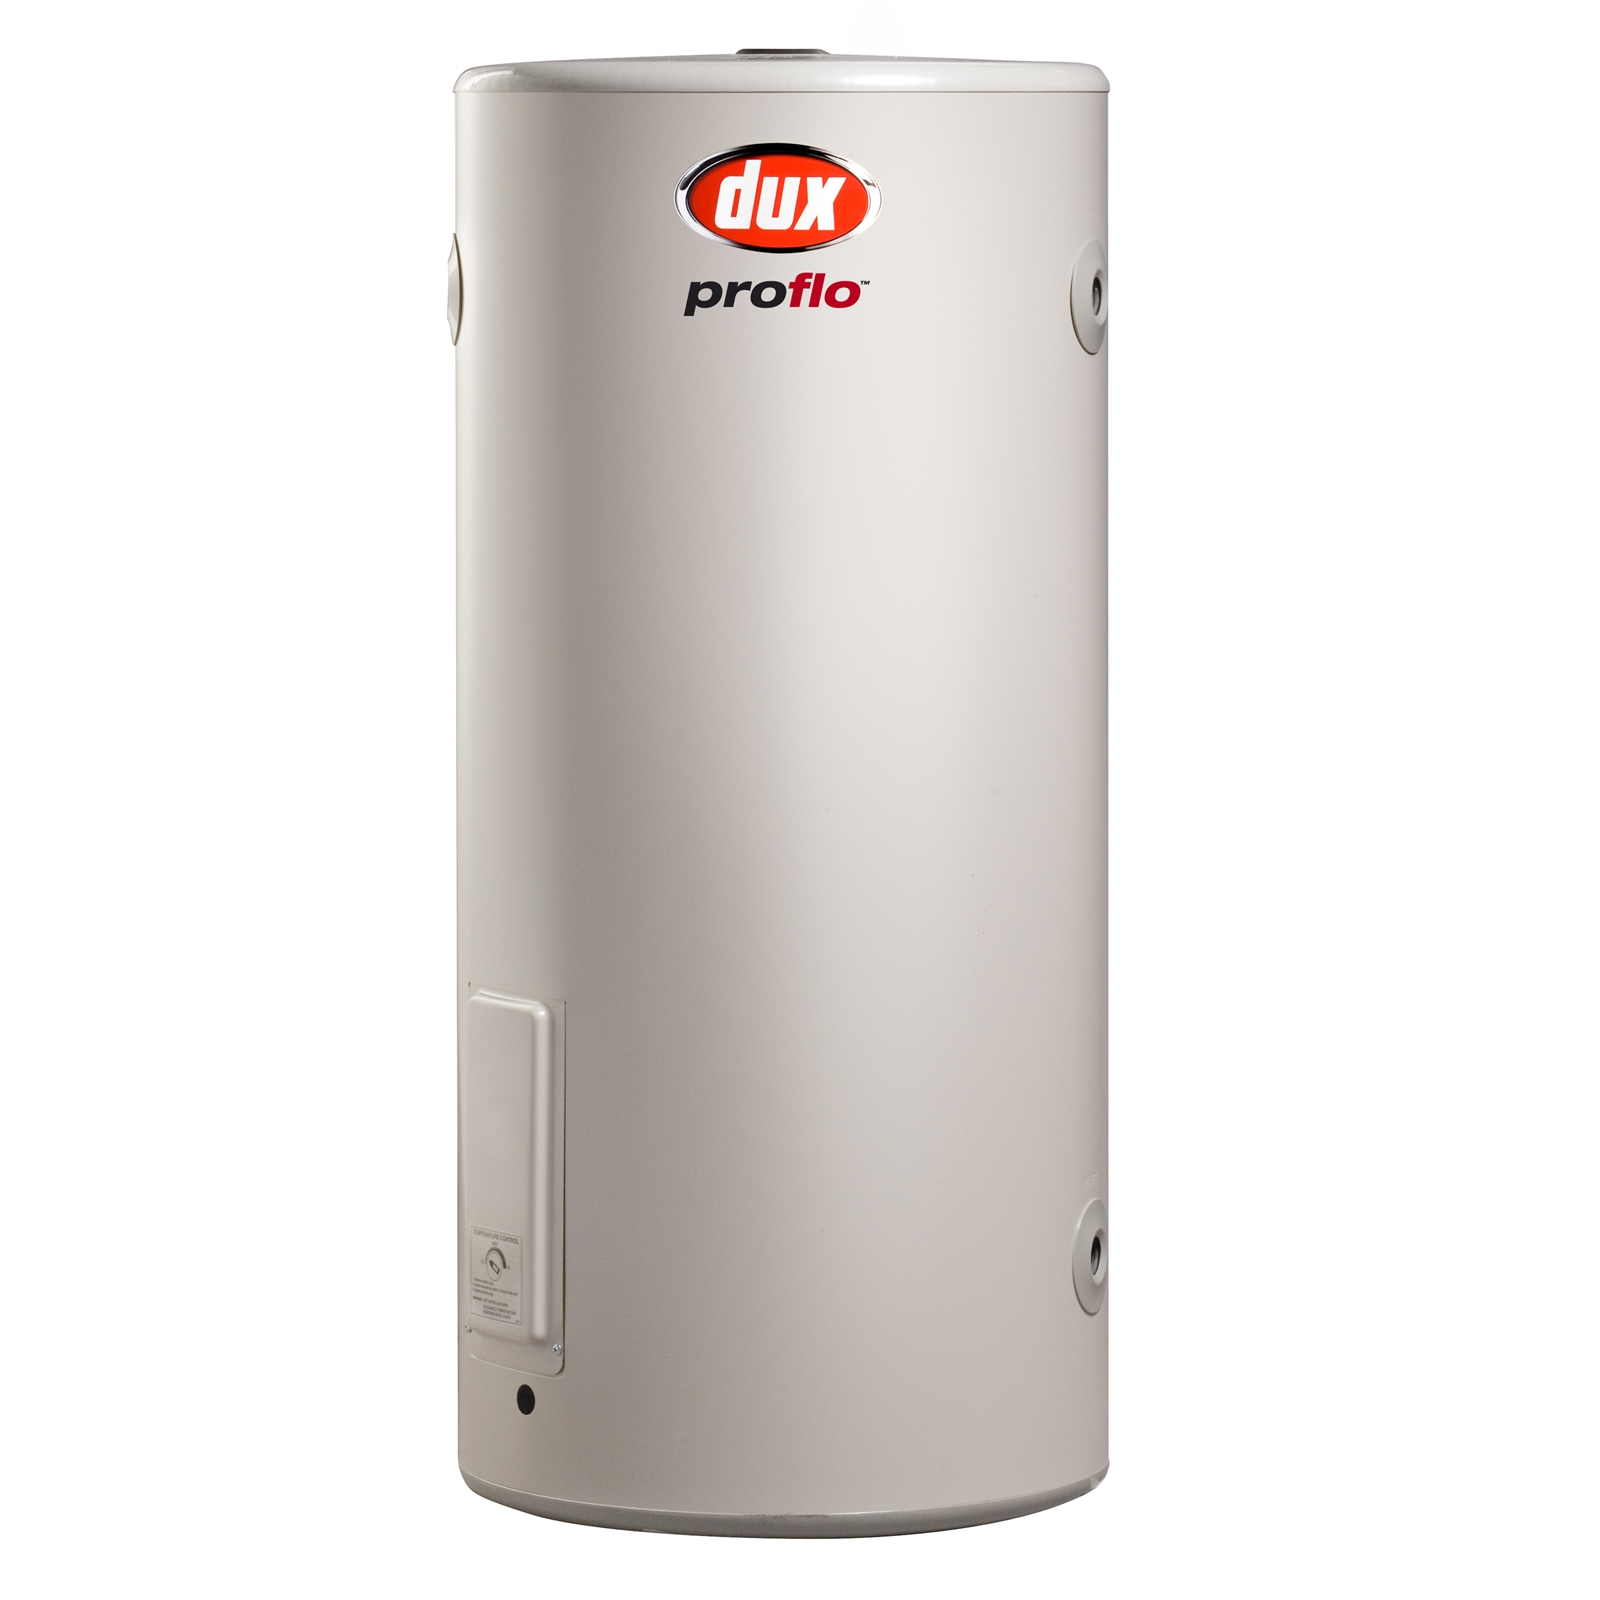 Bunnings Bathroom Vanity Dux Proflo 80l Electric Storage Water Heater 18kw Bunnings